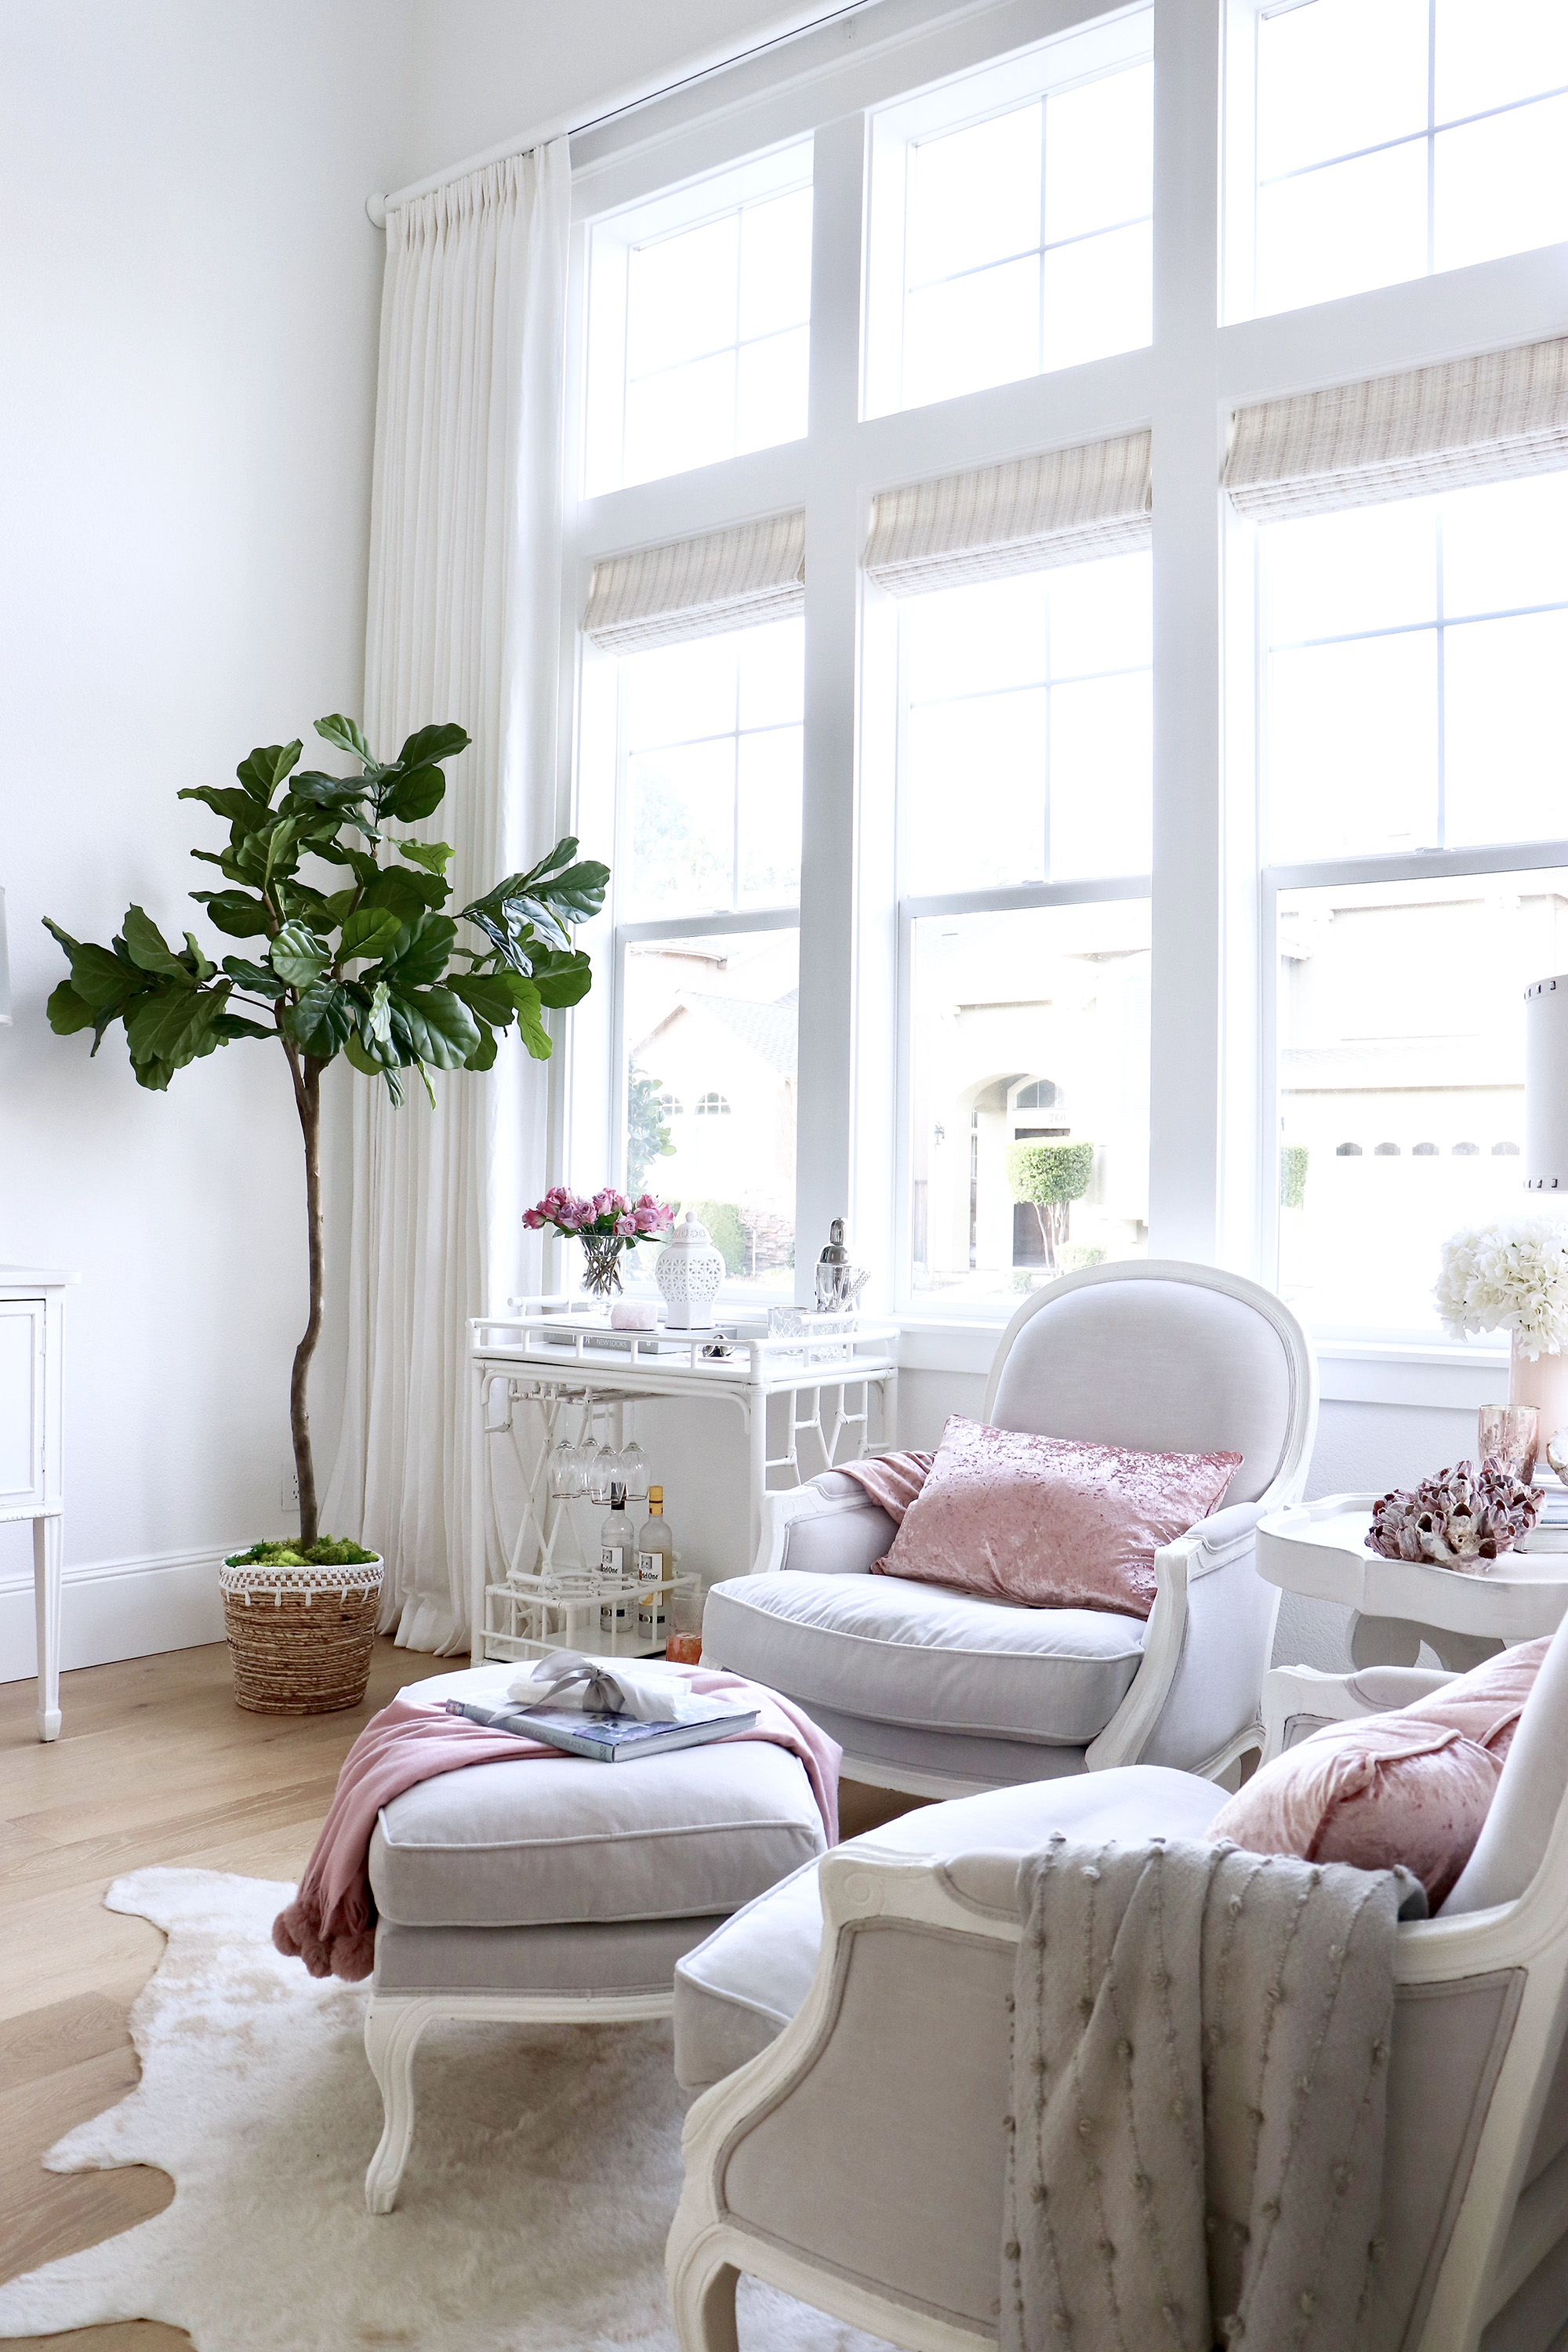 Winter Decorating: 10 Ways to Decorate Your Home for Winter